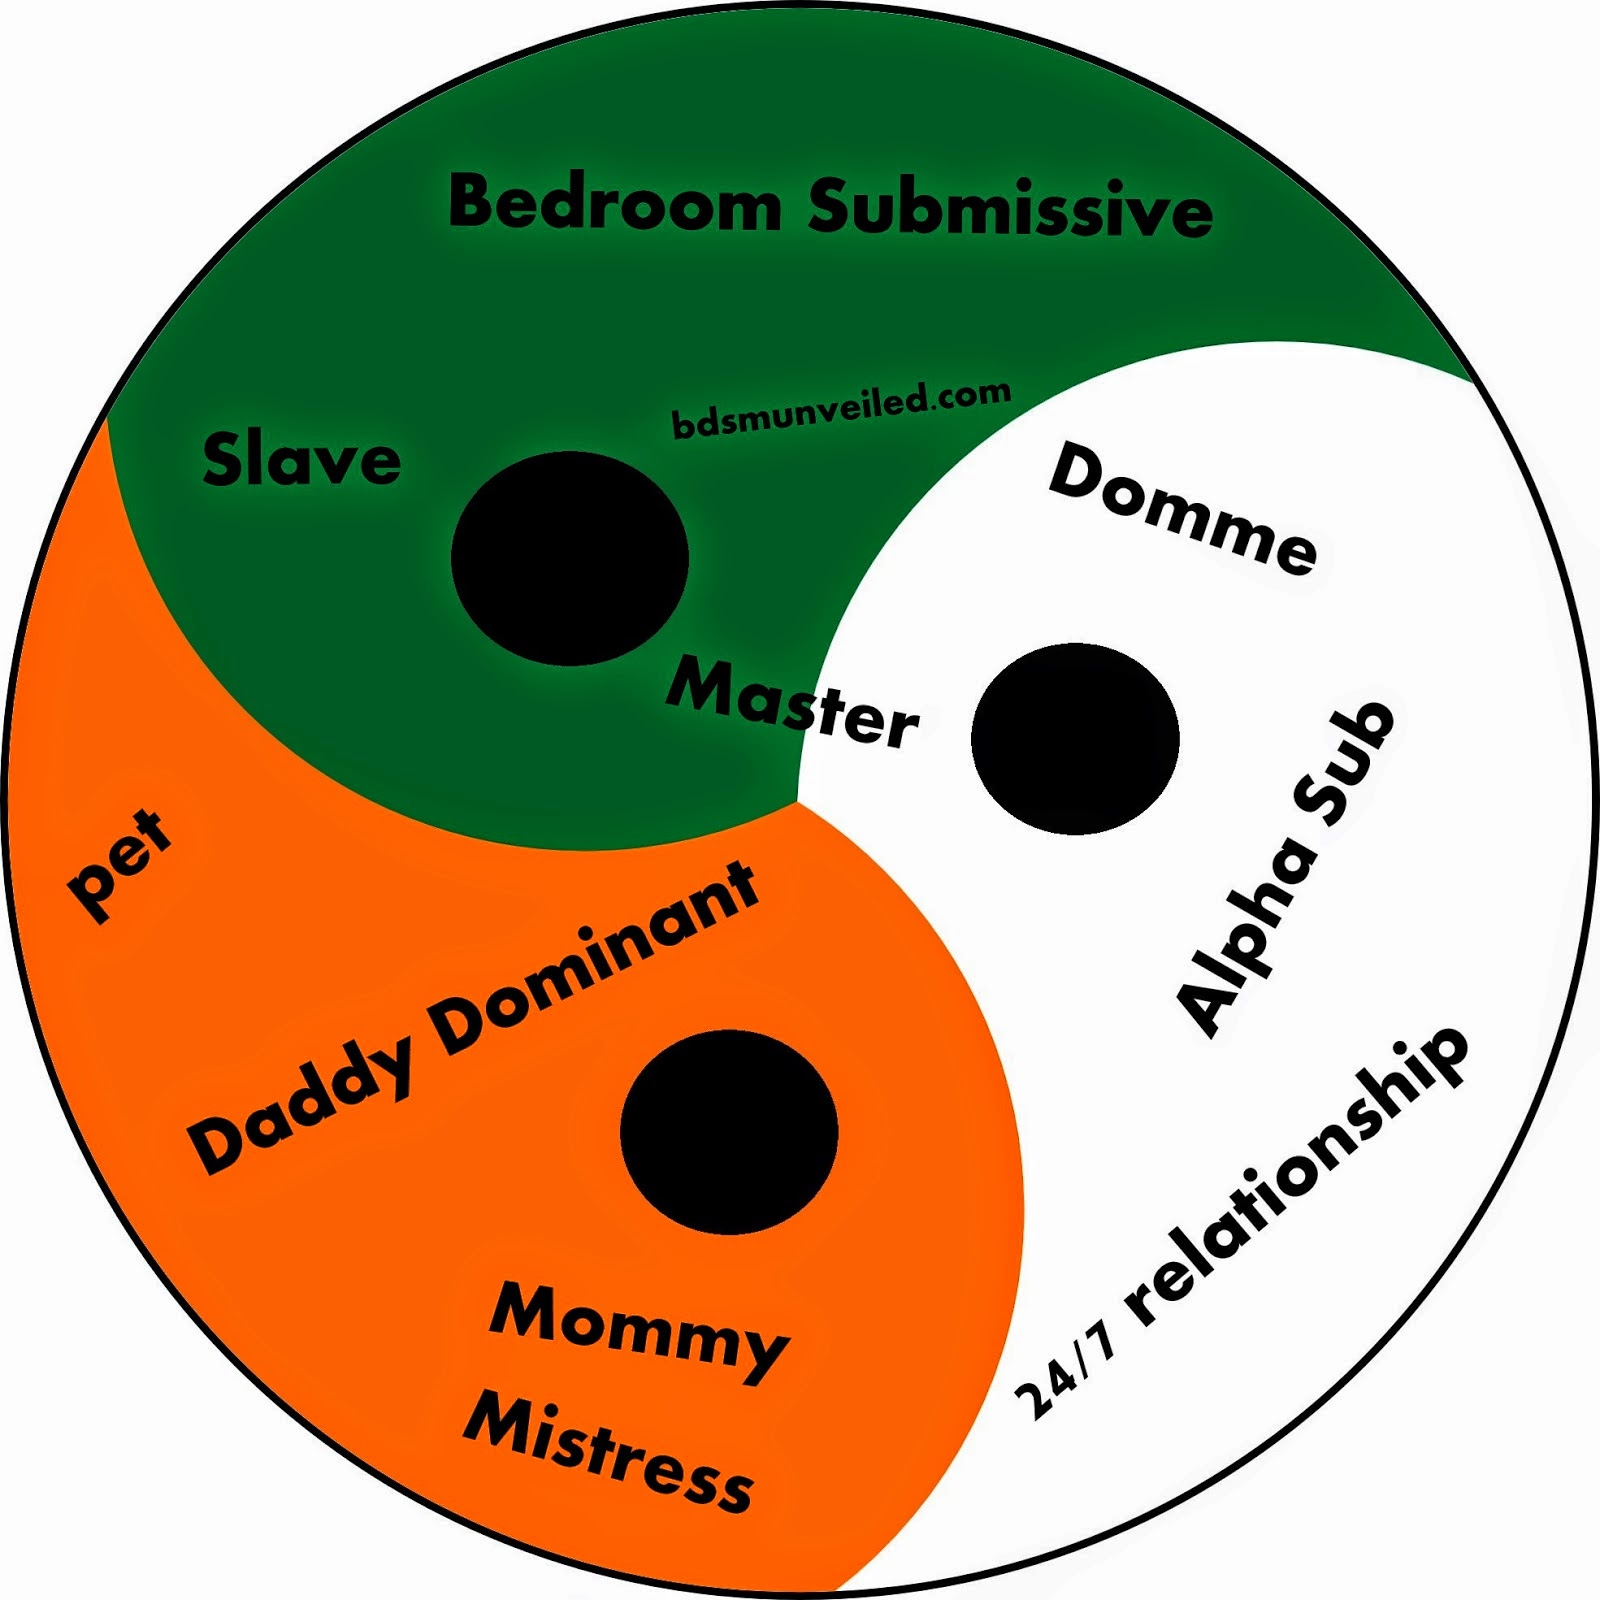 Titles Classification in BDSM